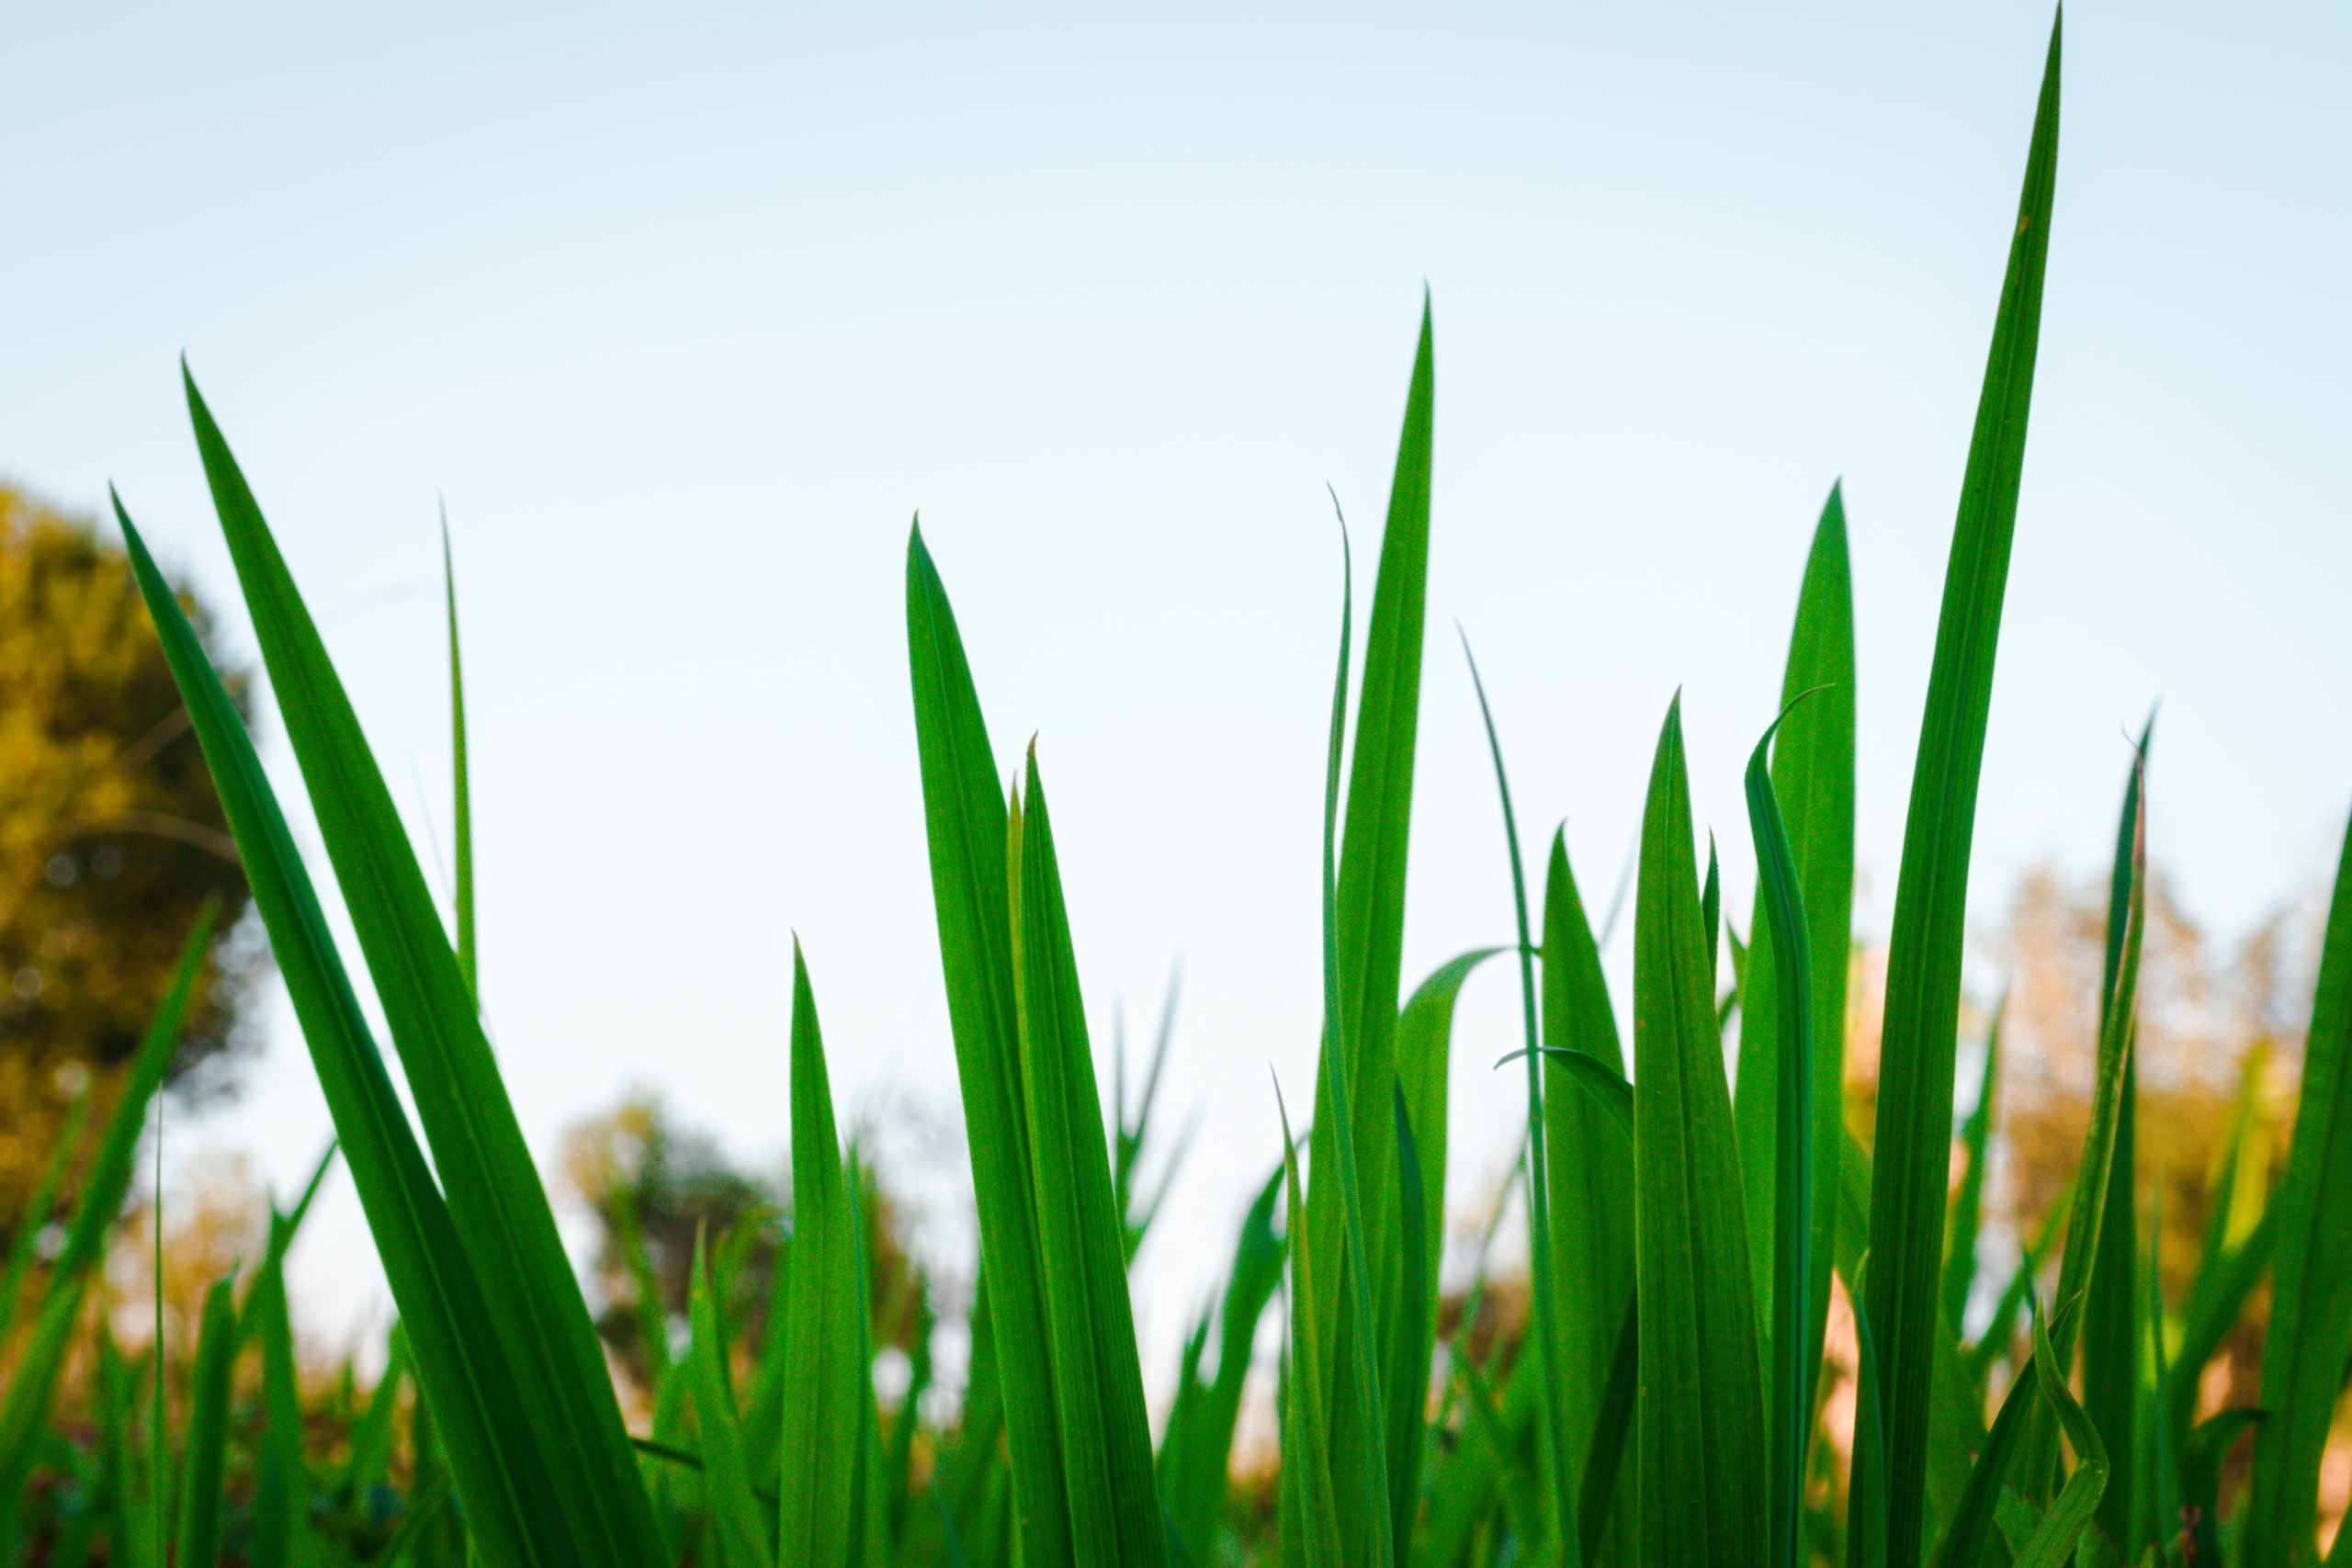 Close-up snapshot of green grass